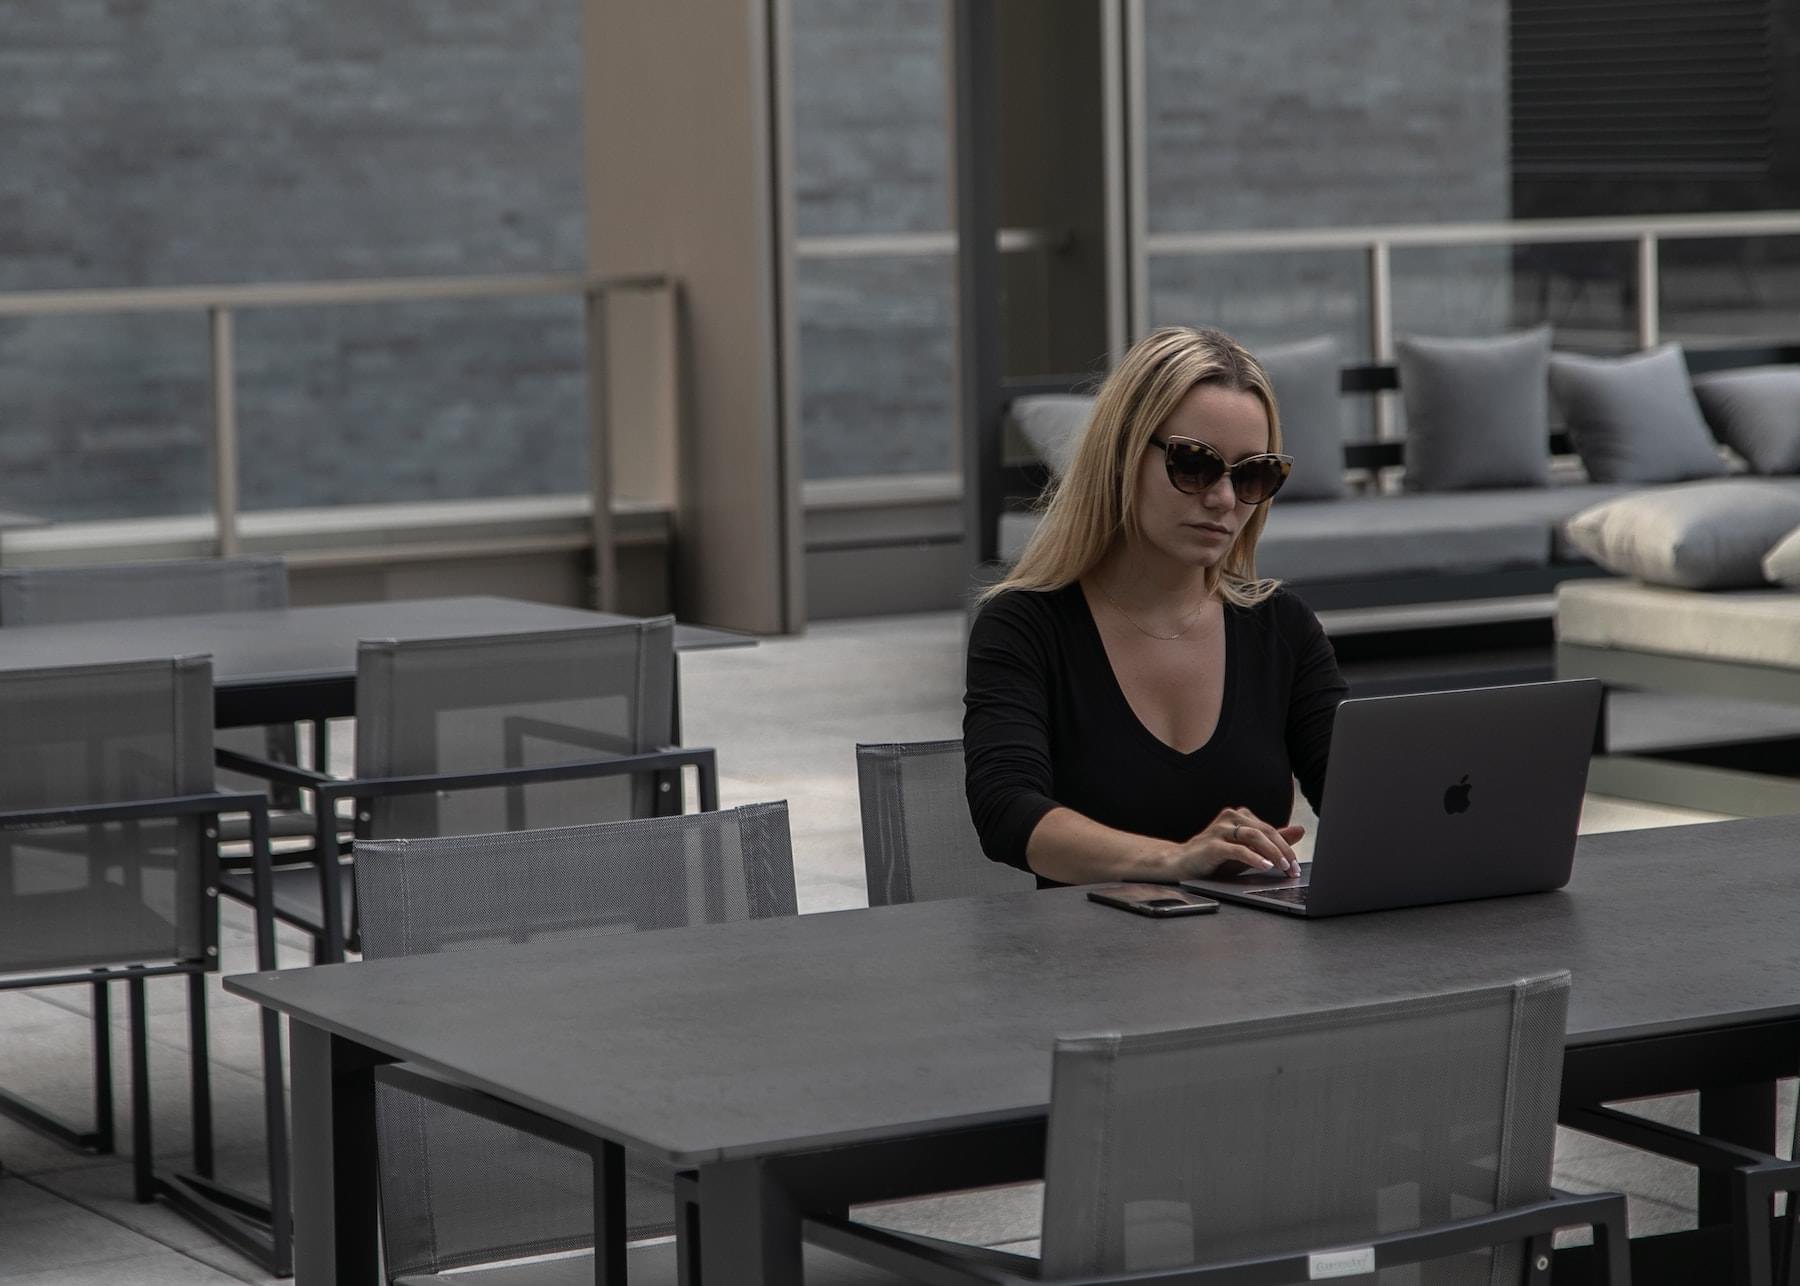 Woman working on laptop at outdoor table